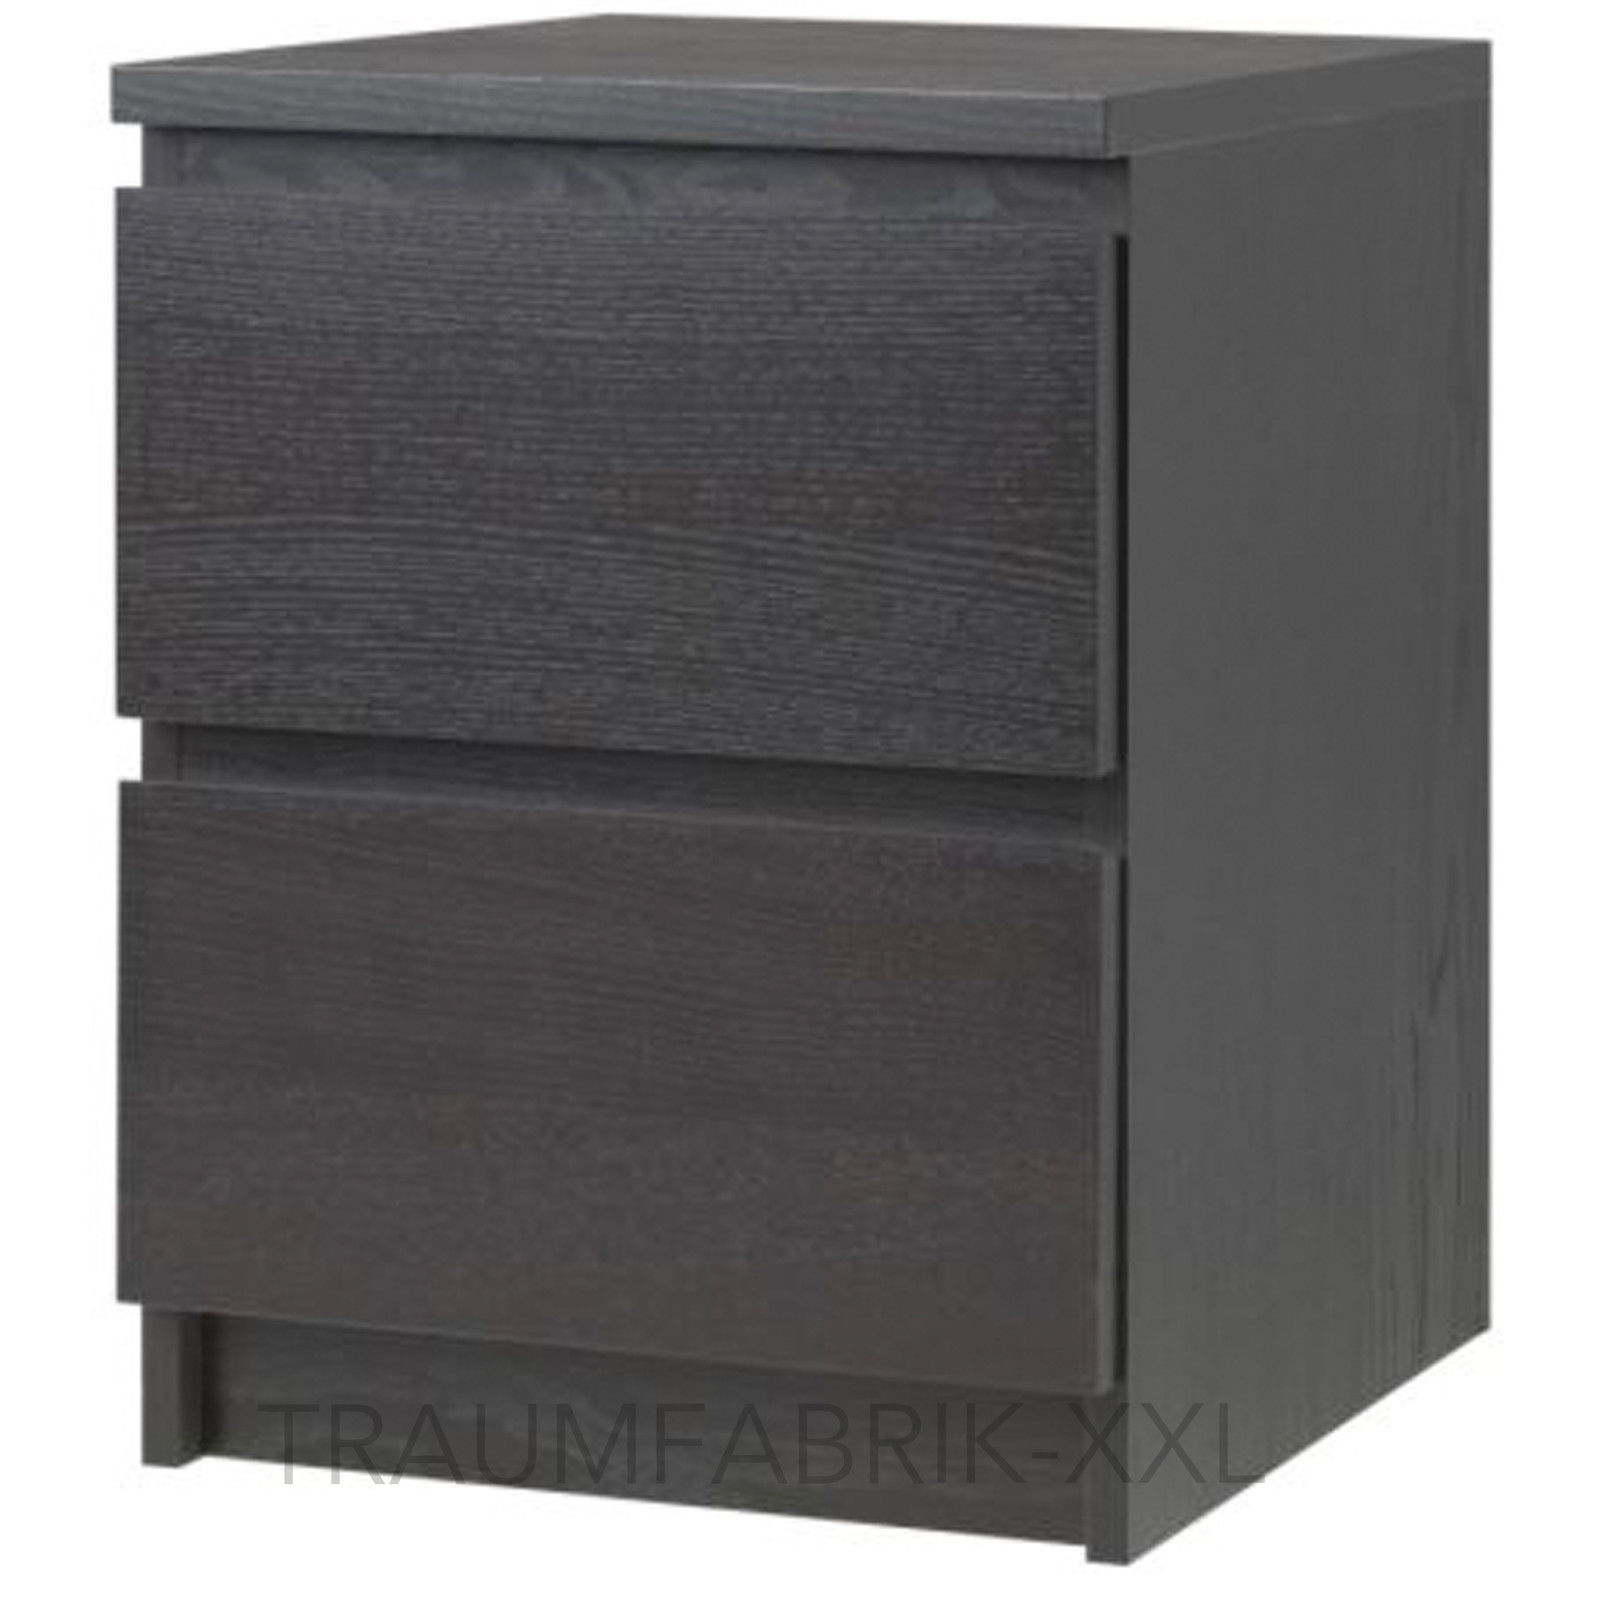 ikea malm kommode mit 2 schubladen schwarz nachtkonsole nachttisch schrank neu traumfabrik xxl. Black Bedroom Furniture Sets. Home Design Ideas